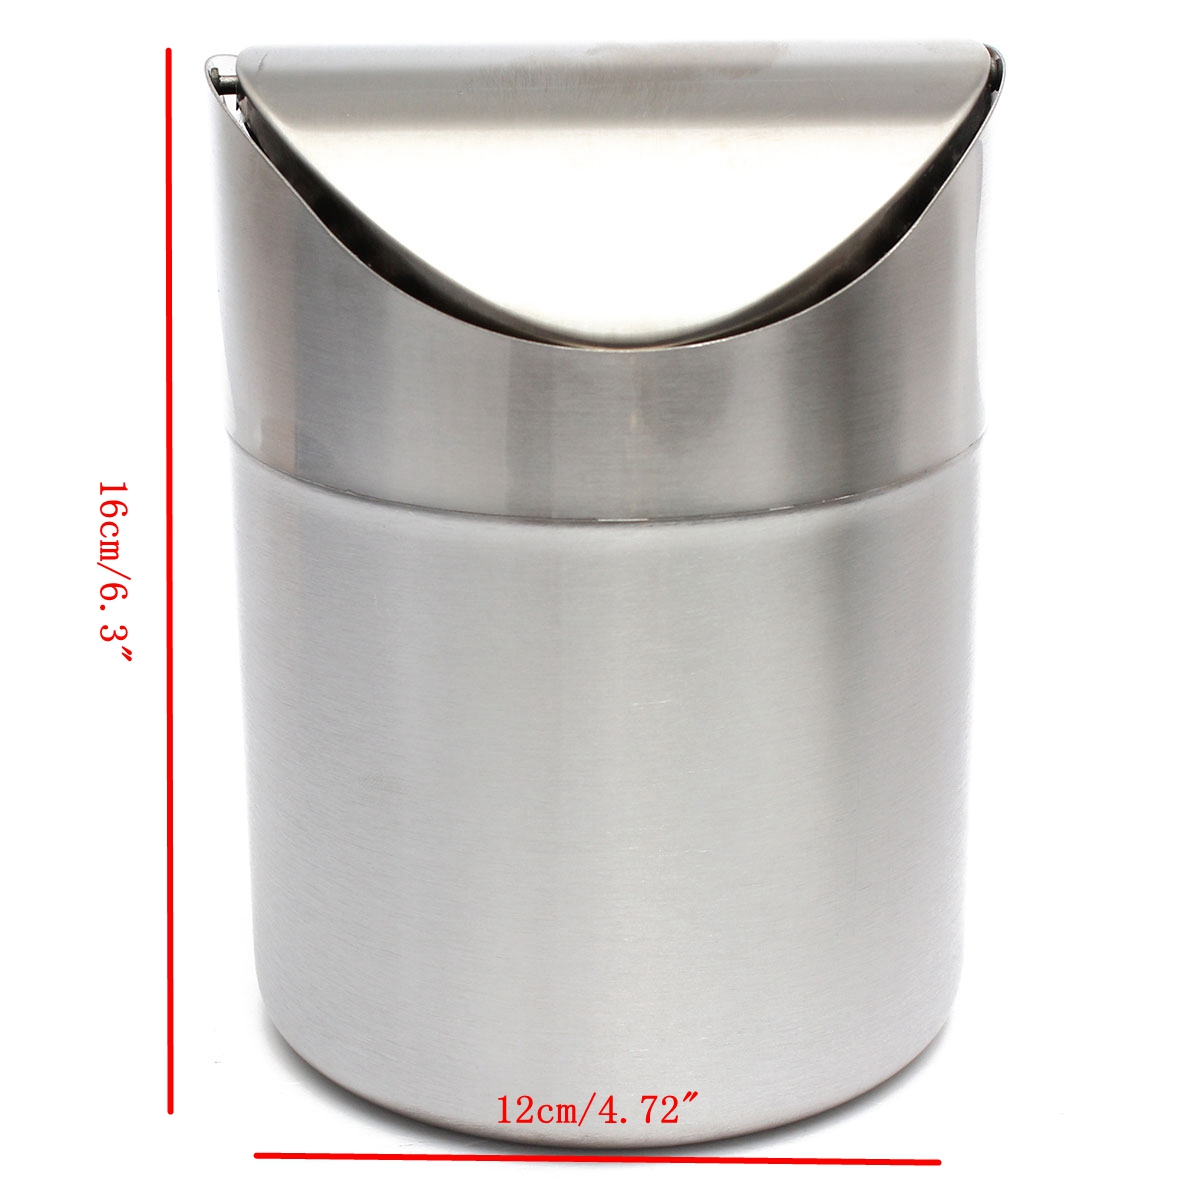 home kitchen table tidy stainless steel dustbin trash can